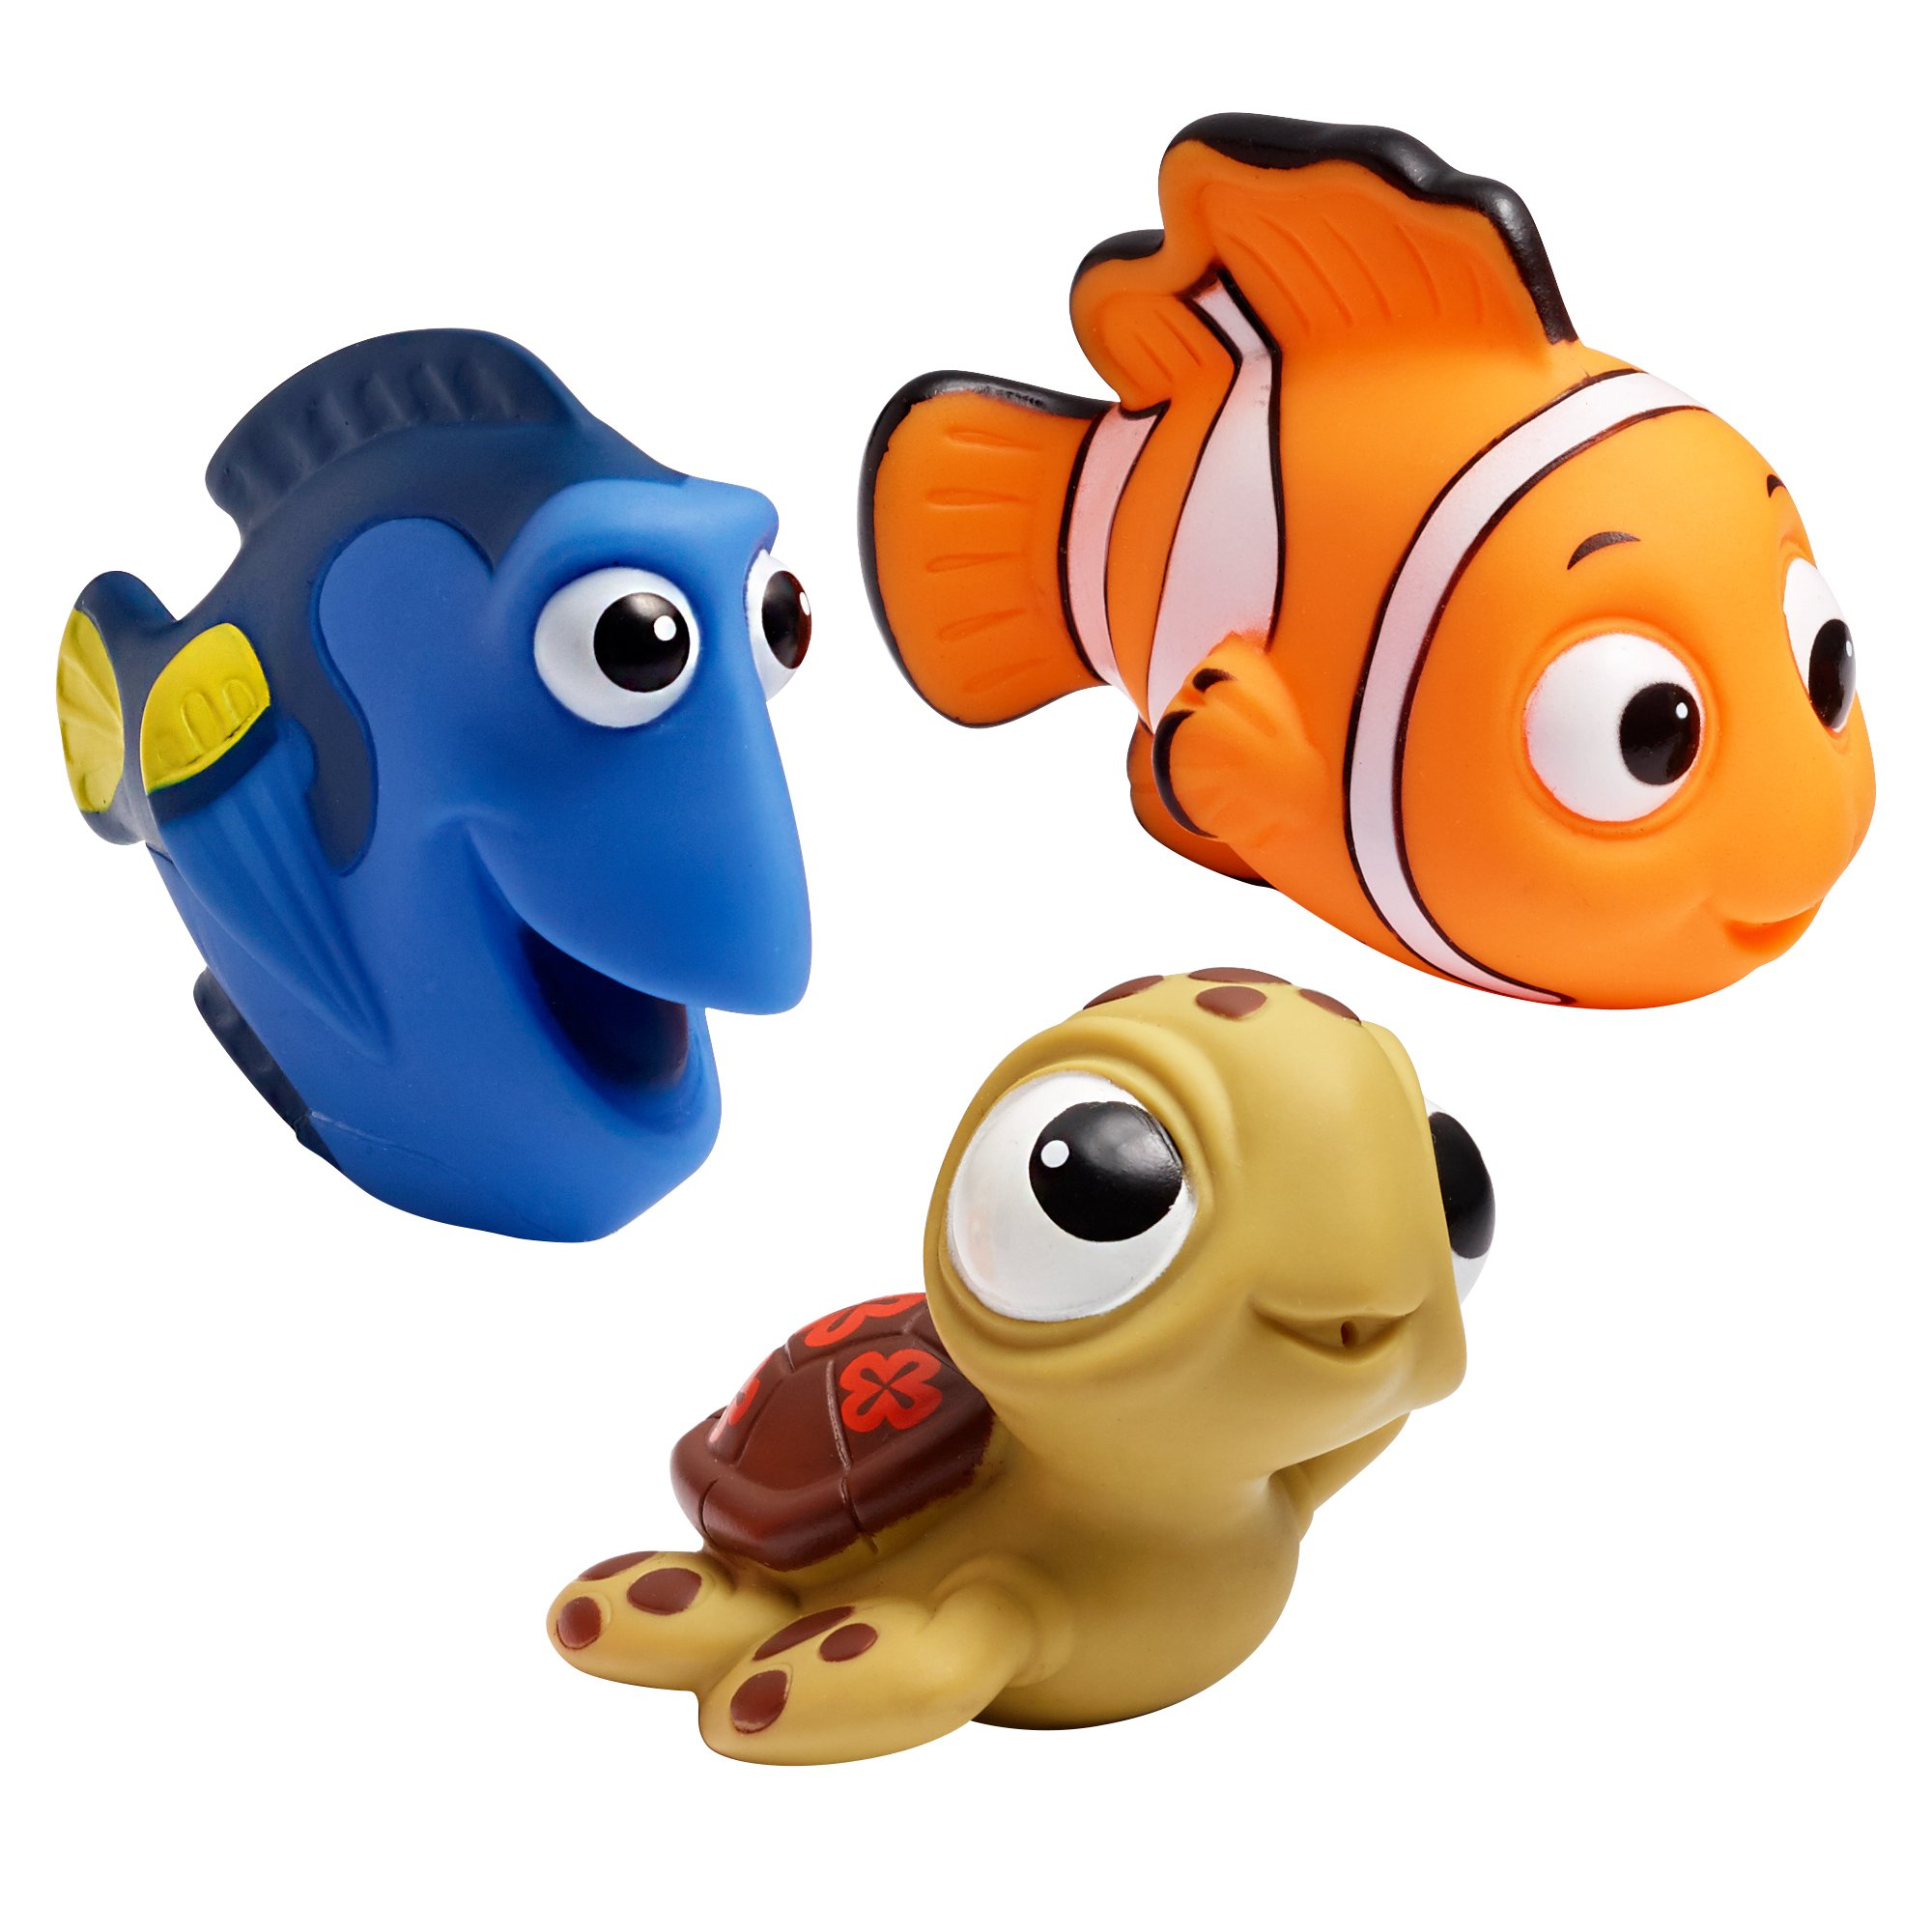 New The First Years Disney Baby Bath Squirt Toys, Finding Nemo Kids ...